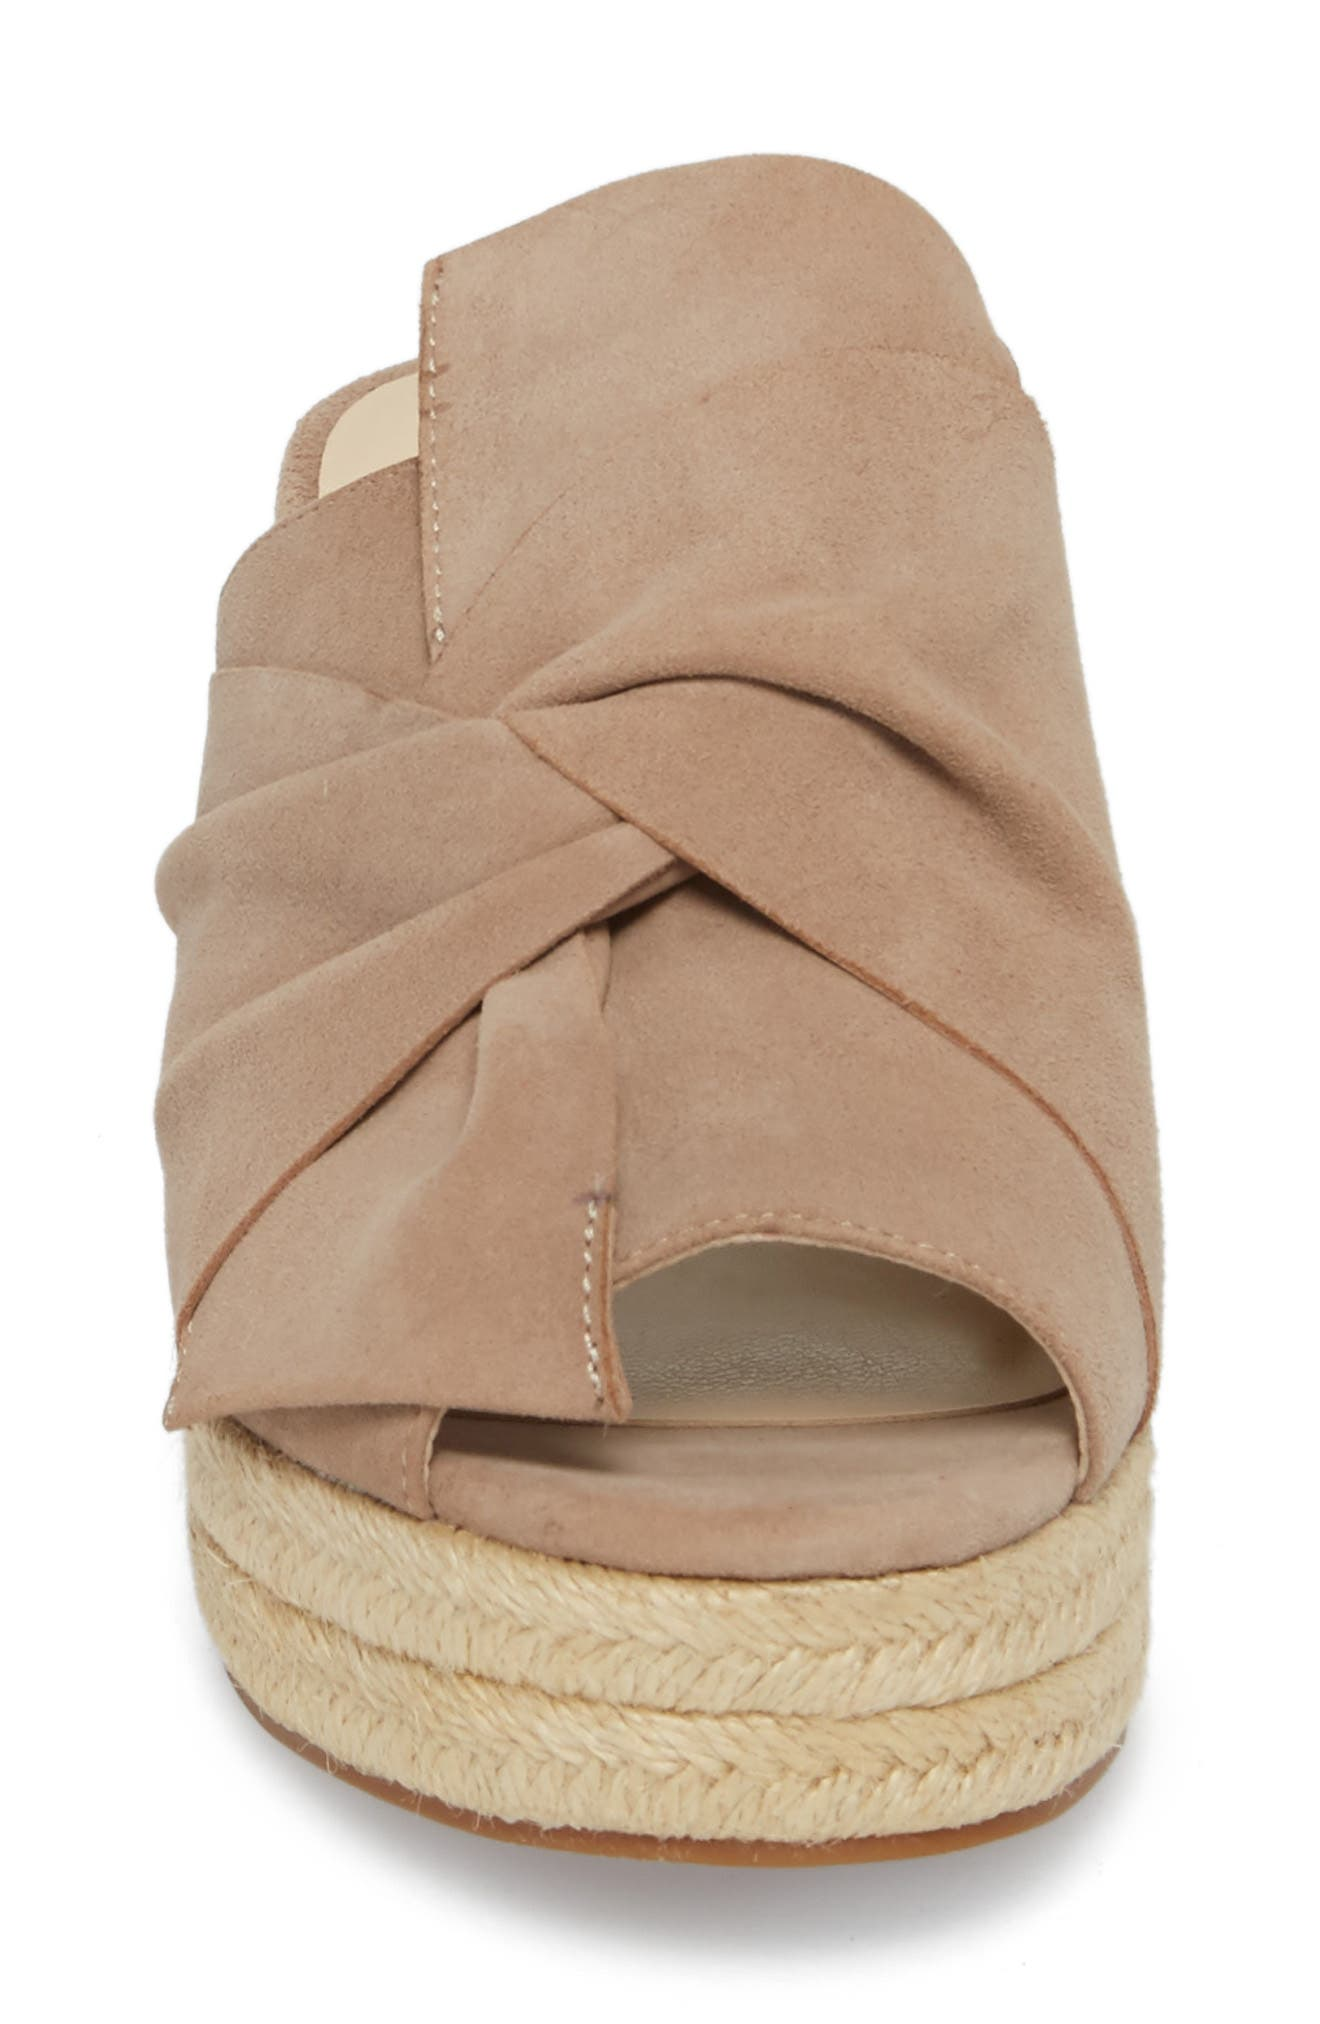 SOLE SOCIETY, Carima Espadrille Wedge, Alternate thumbnail 4, color, TAUPE FABRIC